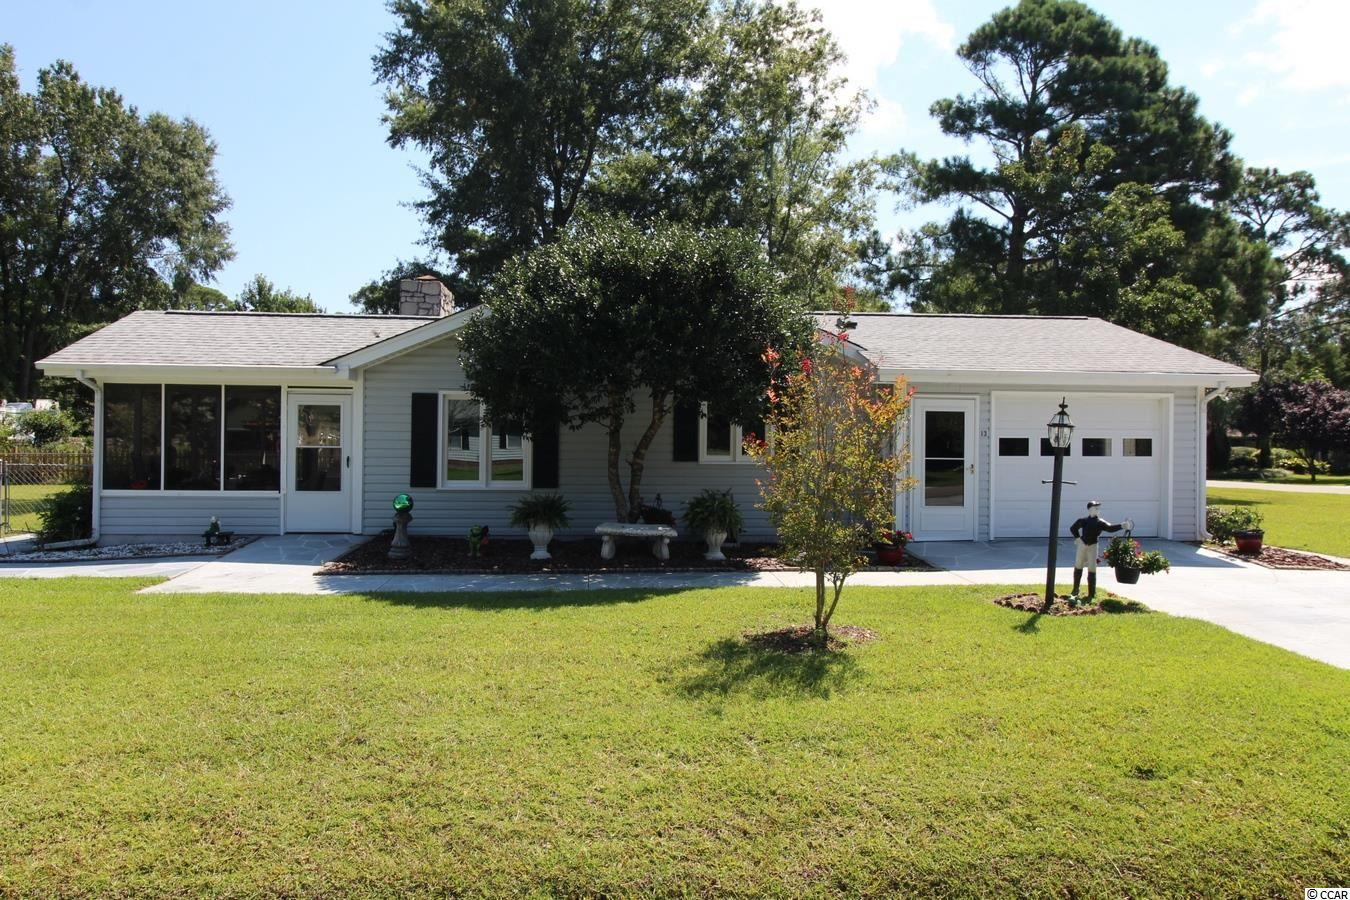 """This quality 3BR/2BA home with an oversized 1-car garage is being offered for sale by the original owner. The property is 0.34 acre corner lot with a screened-in back porch, fenced back yard & storage shed (8x10). HVAC new in 2020. Roof was replaced in 2016. The great room has vaulted ceilings and a gas fireplace with remote control start up. The kitchen has Corian countertops & smooth top stove. Formal Dining Room. The home has handicap accessibility features including 36"""" wide door frames and walk-in shower in master bathroom. New shower in 2nd bathroom. Termite treatment system. Close to Socastee High School and all the attractions and amenities that the Grand Strand has to offer."""